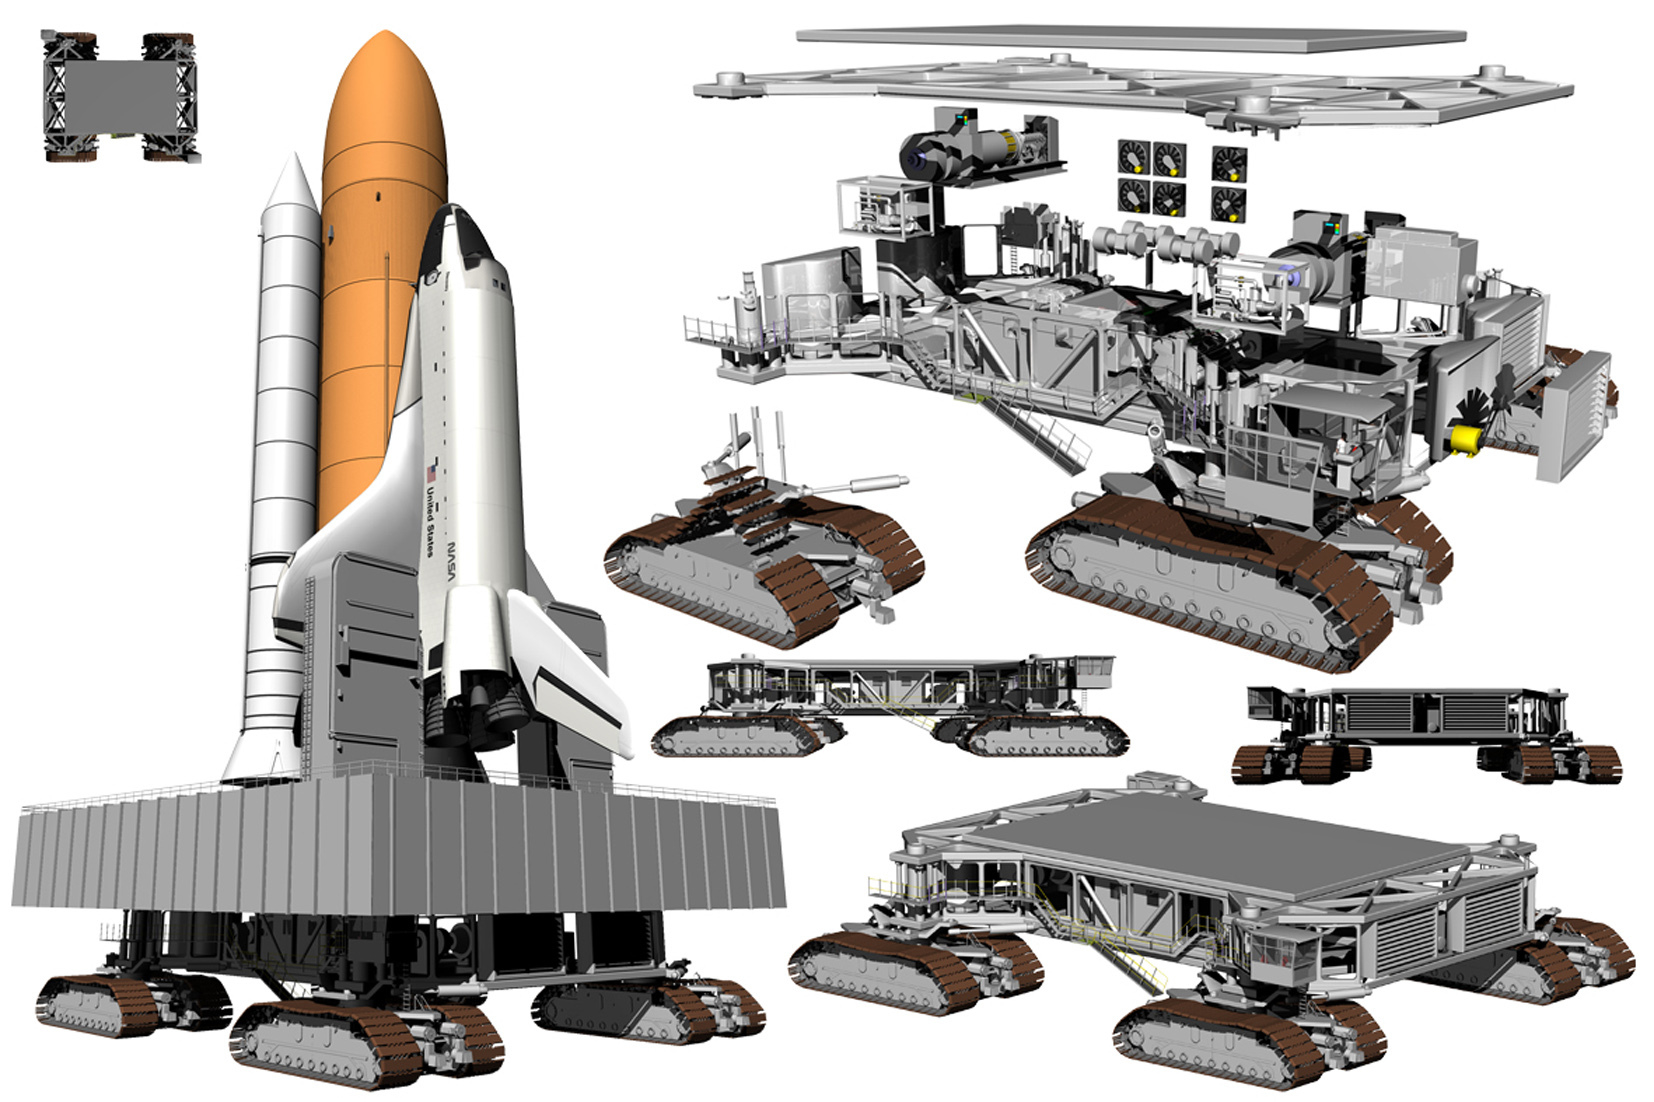 Space Shuttle And Crawler